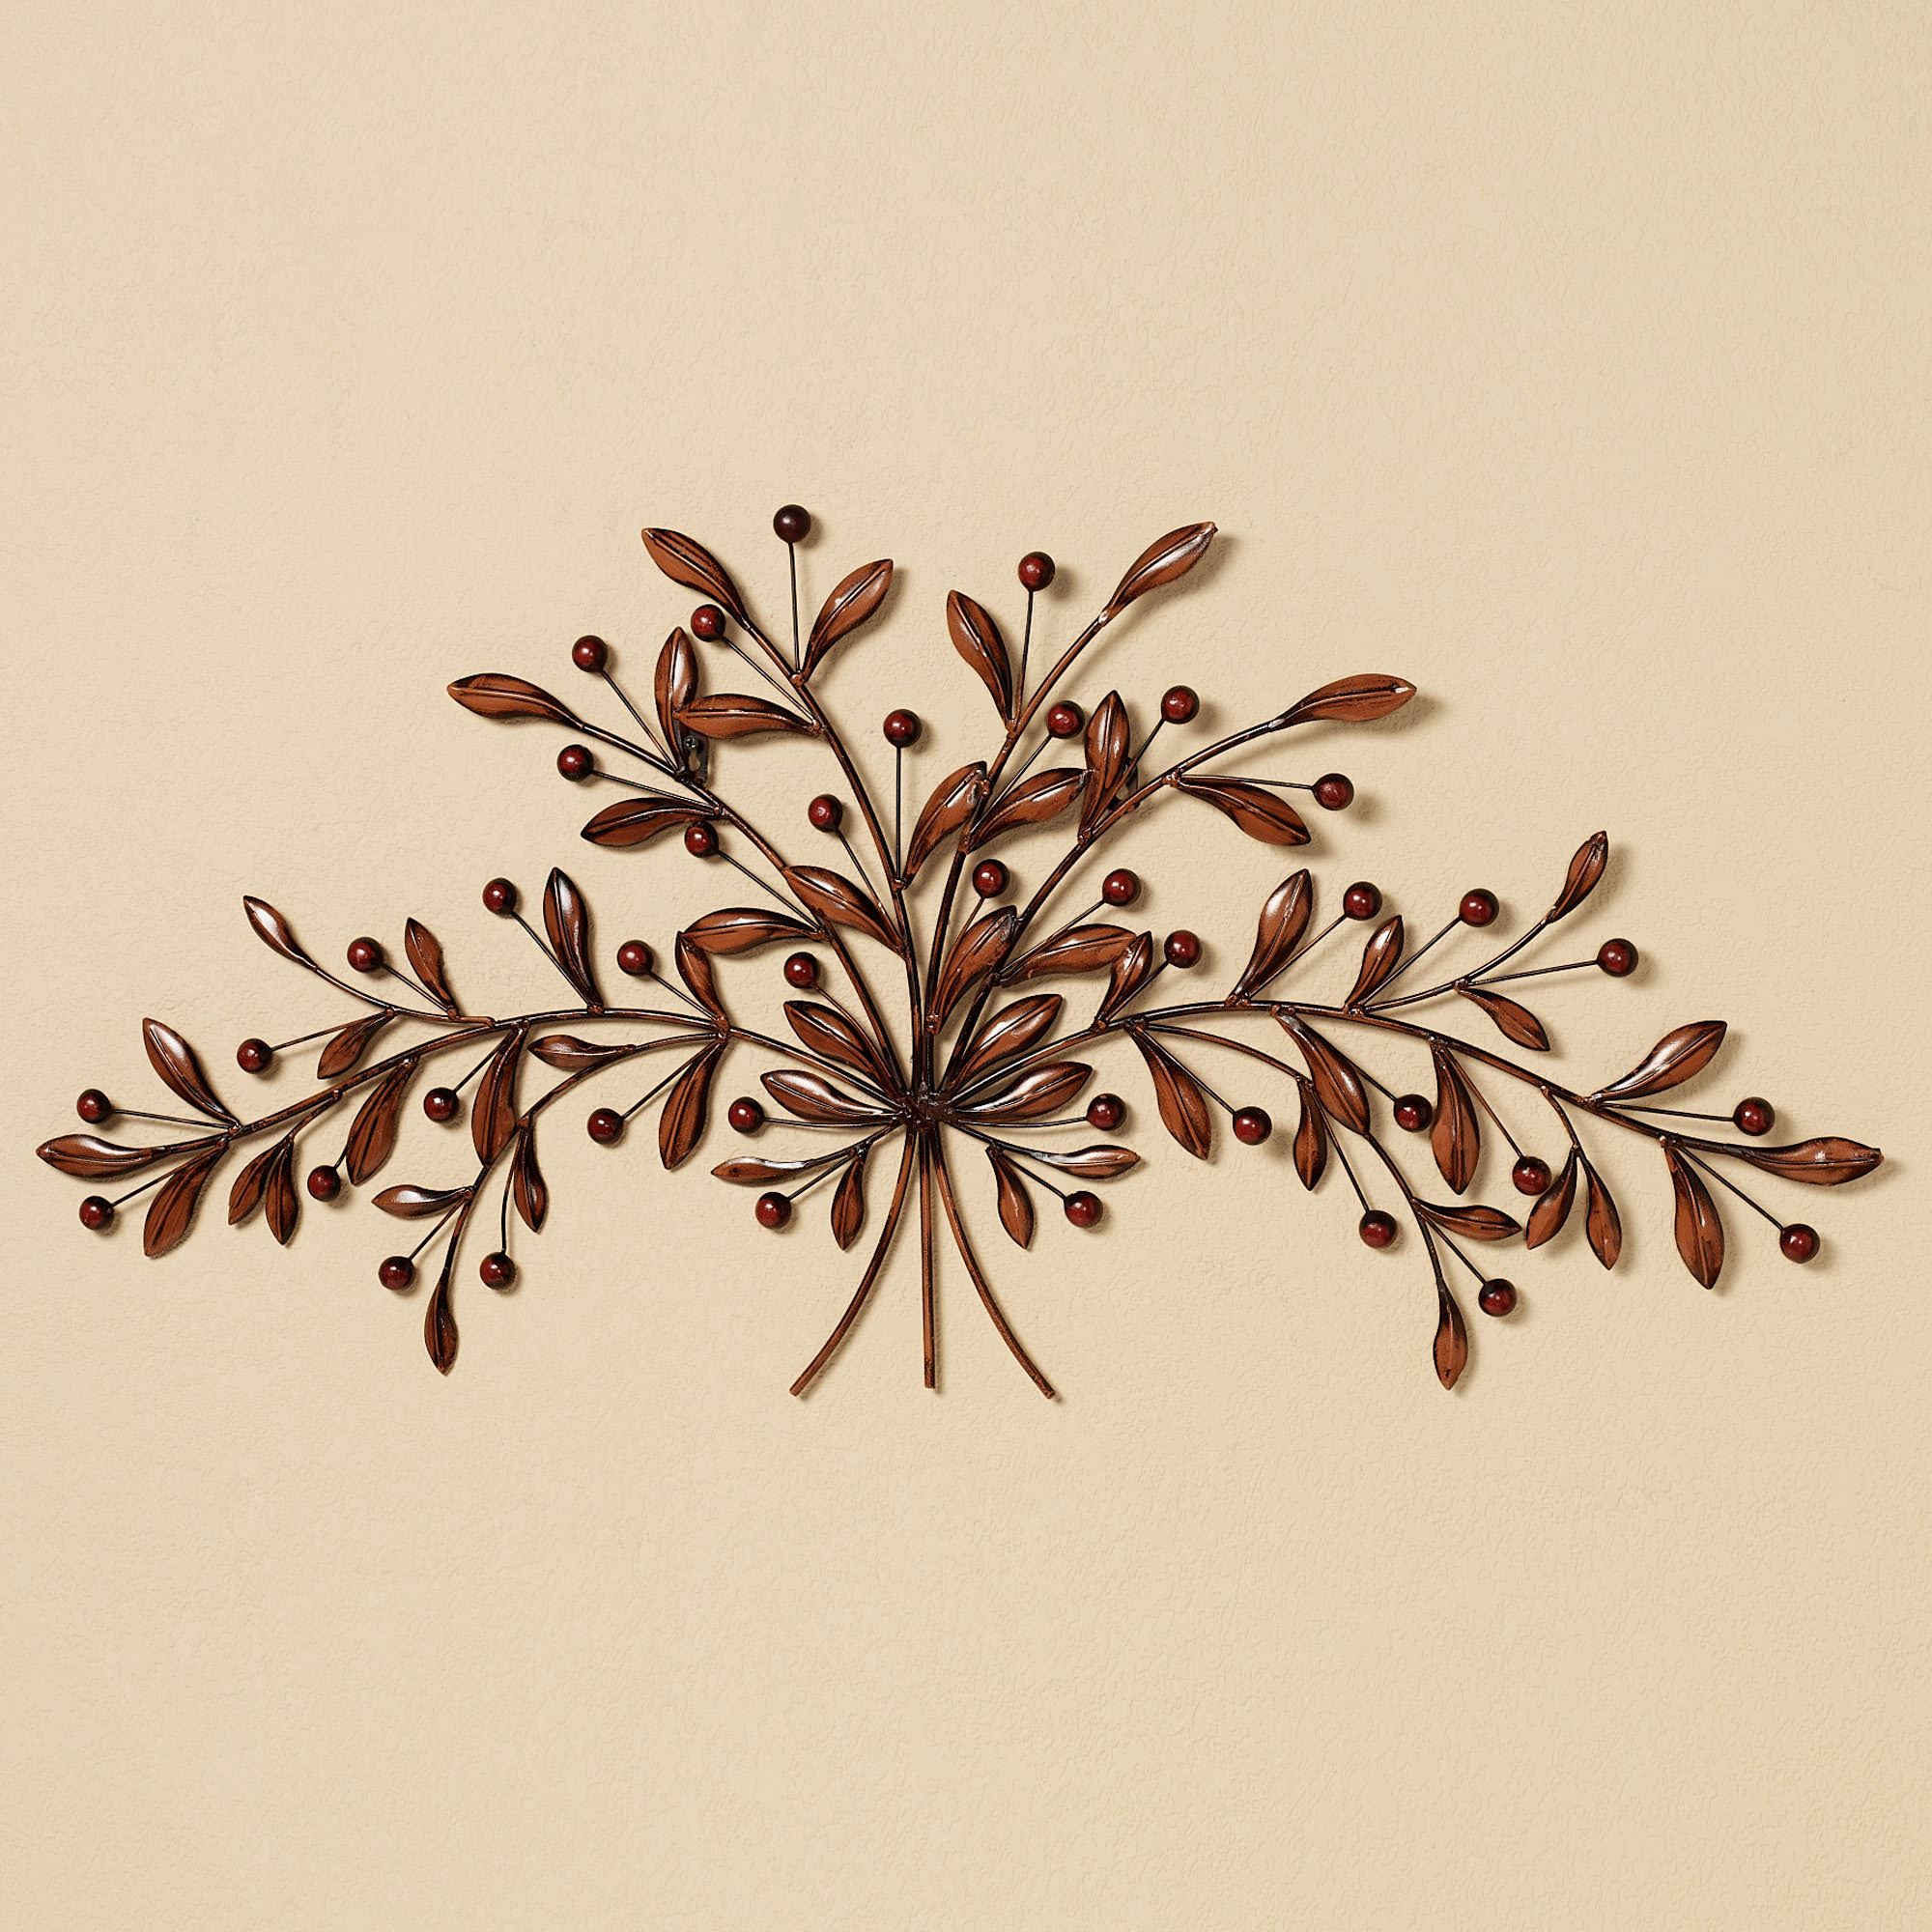 Aufregend Wall Art Metal Leaves Nautical Branch Flowers With Regard To Leaves Metal Sculpture Wall Decor (View 8 of 30)